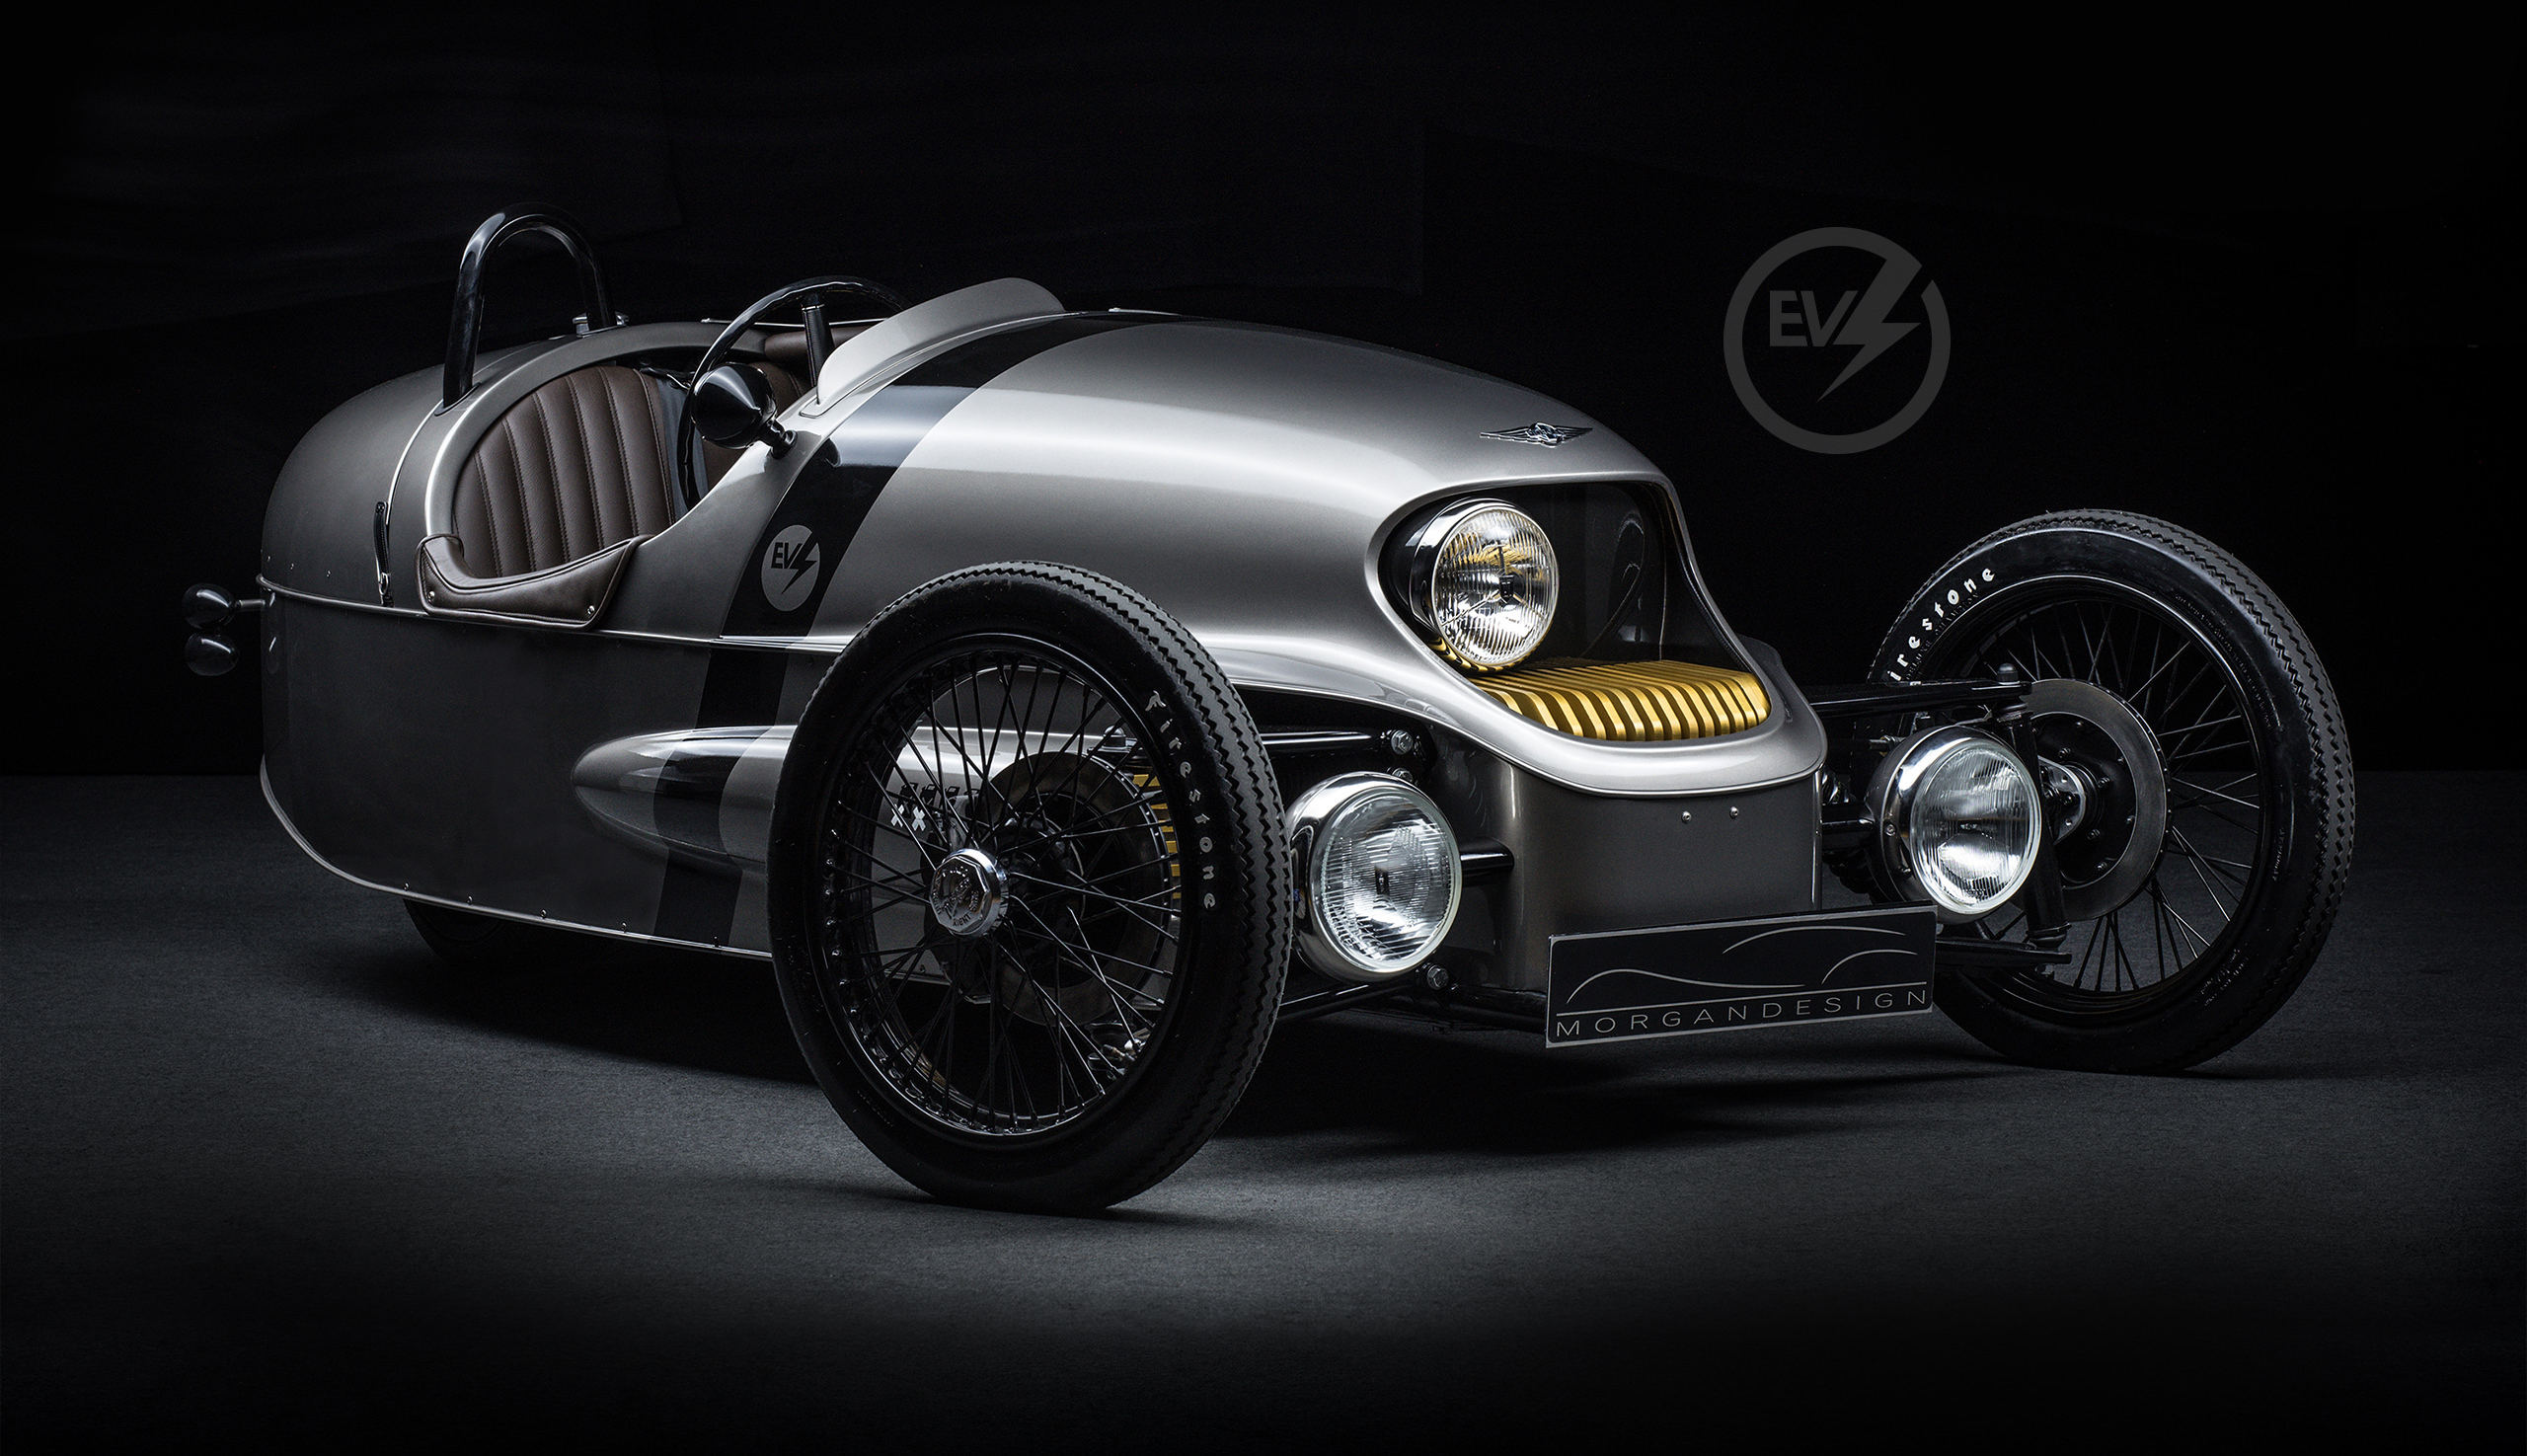 The Motoring World: Morgan, the classic car brand expects 2016 to be ...